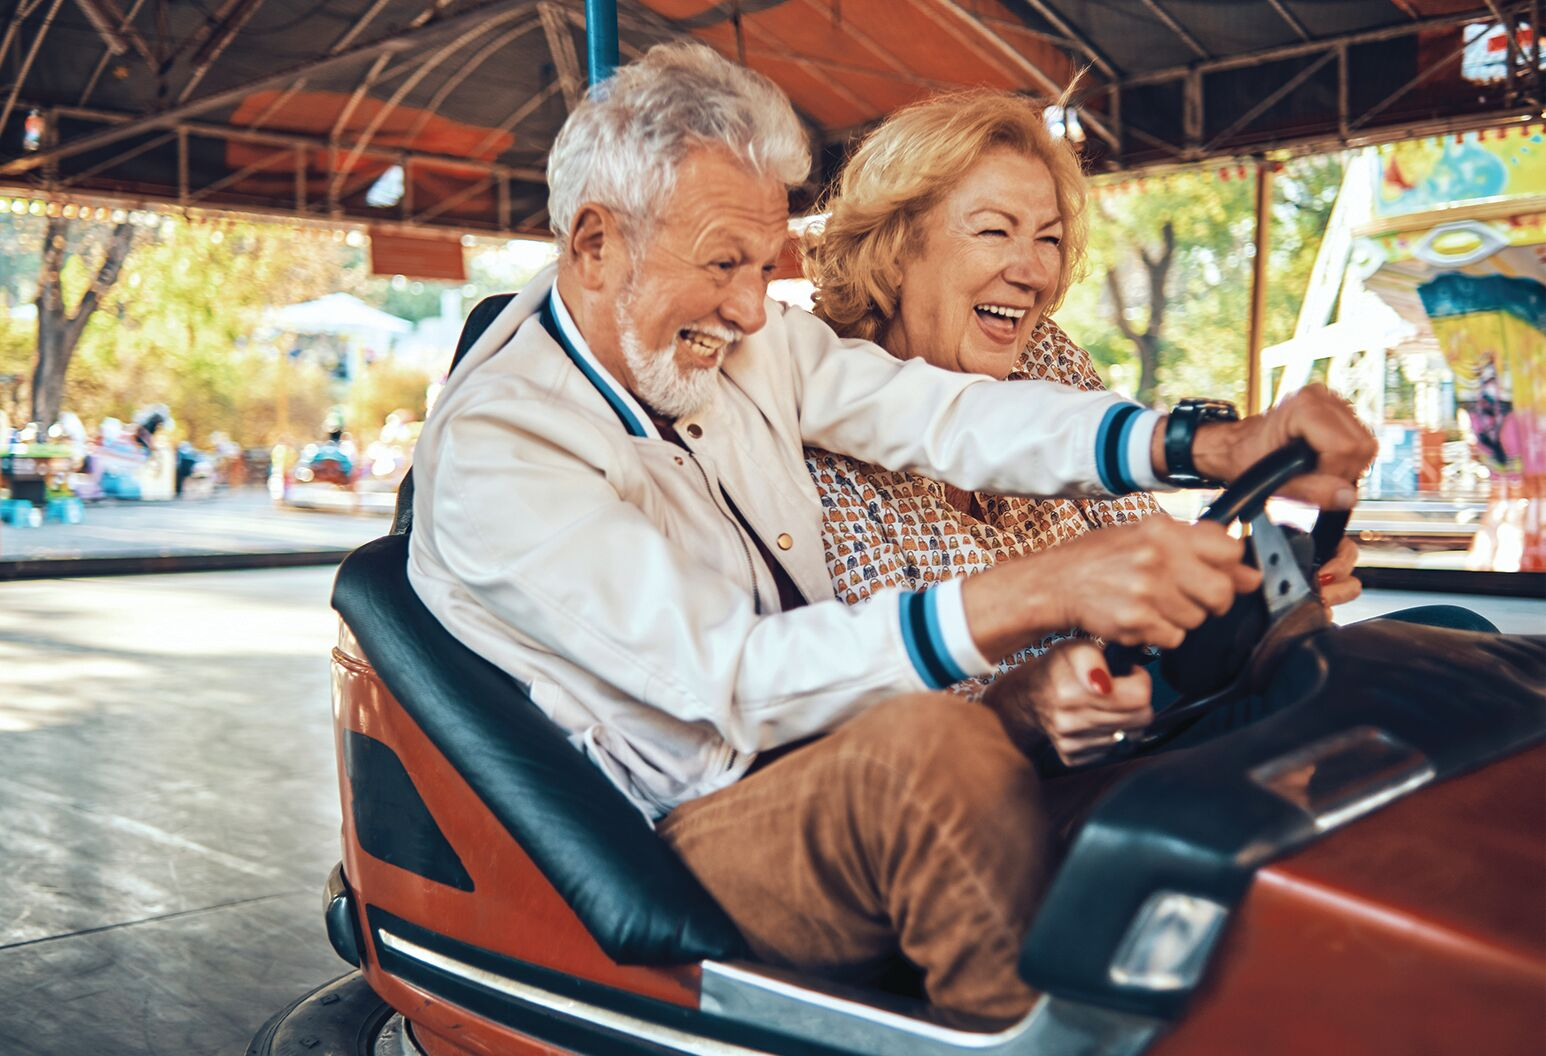 An elderly man and woman smiling in a bumper car